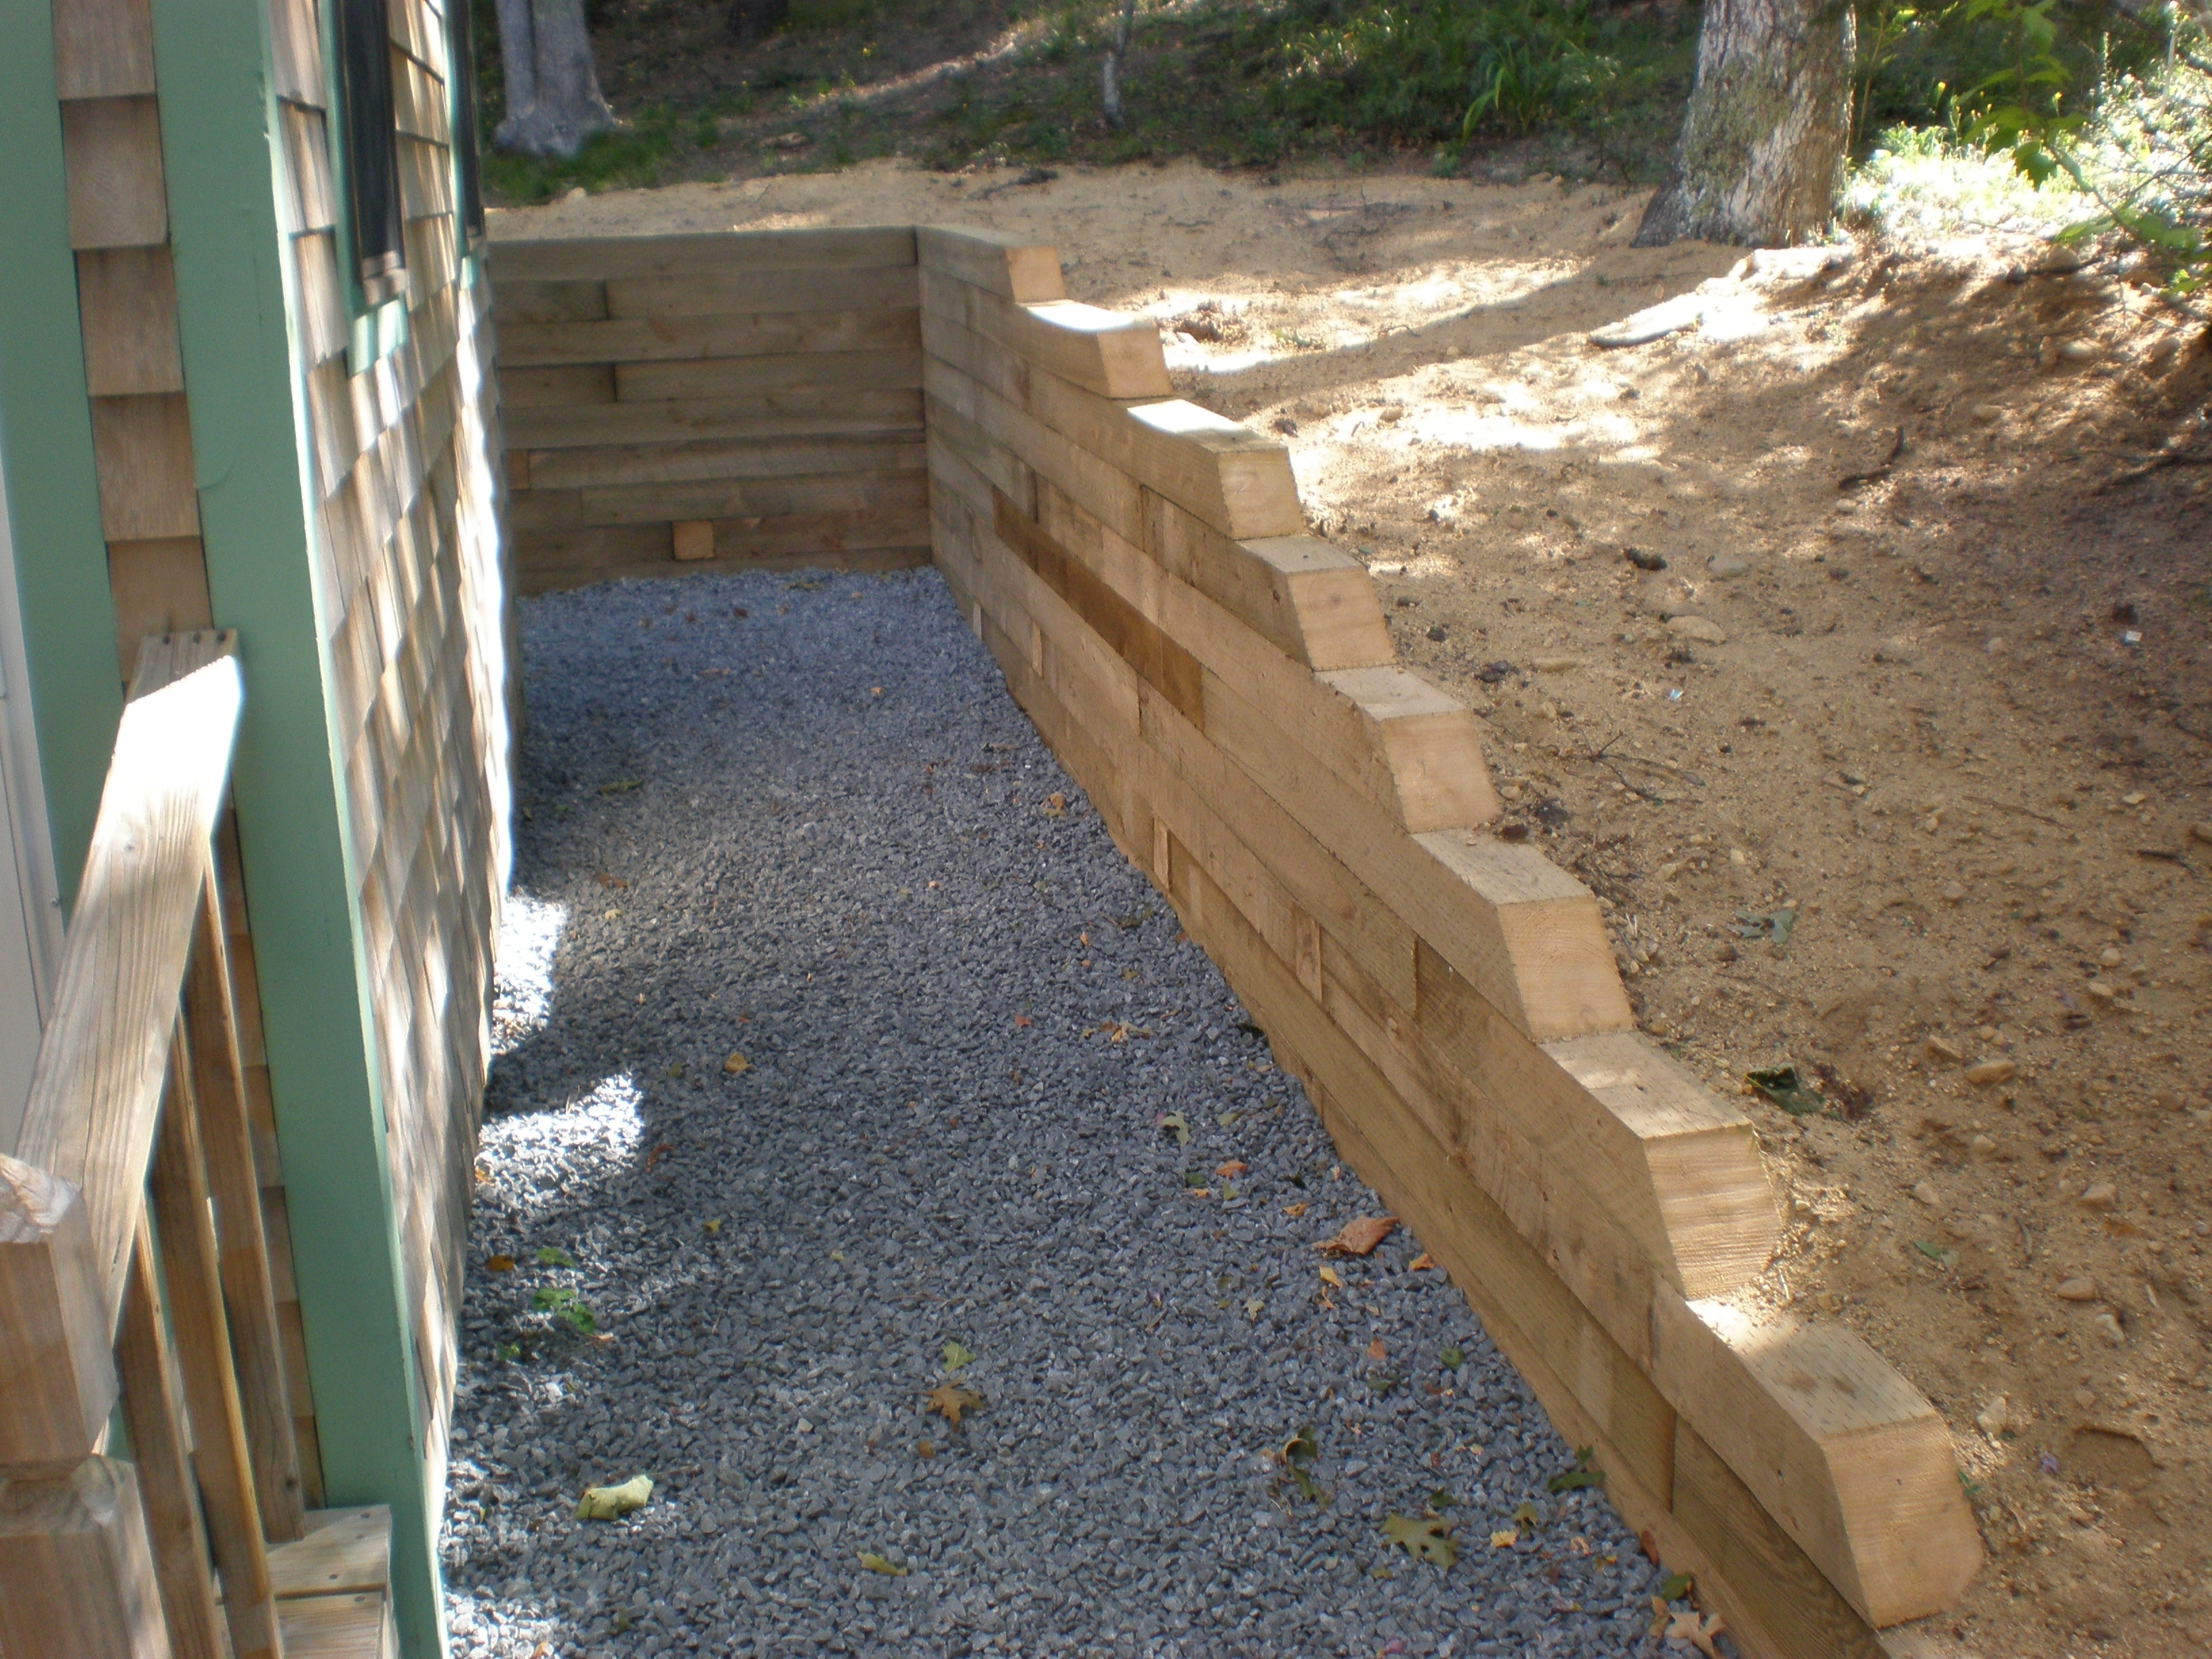 Landscape Timber Retaining Wall Meyer Landscapes Intended For Landscape Timbers Retaining Wall Durable Landscape Timbers Retaining Wall For Great Decoration